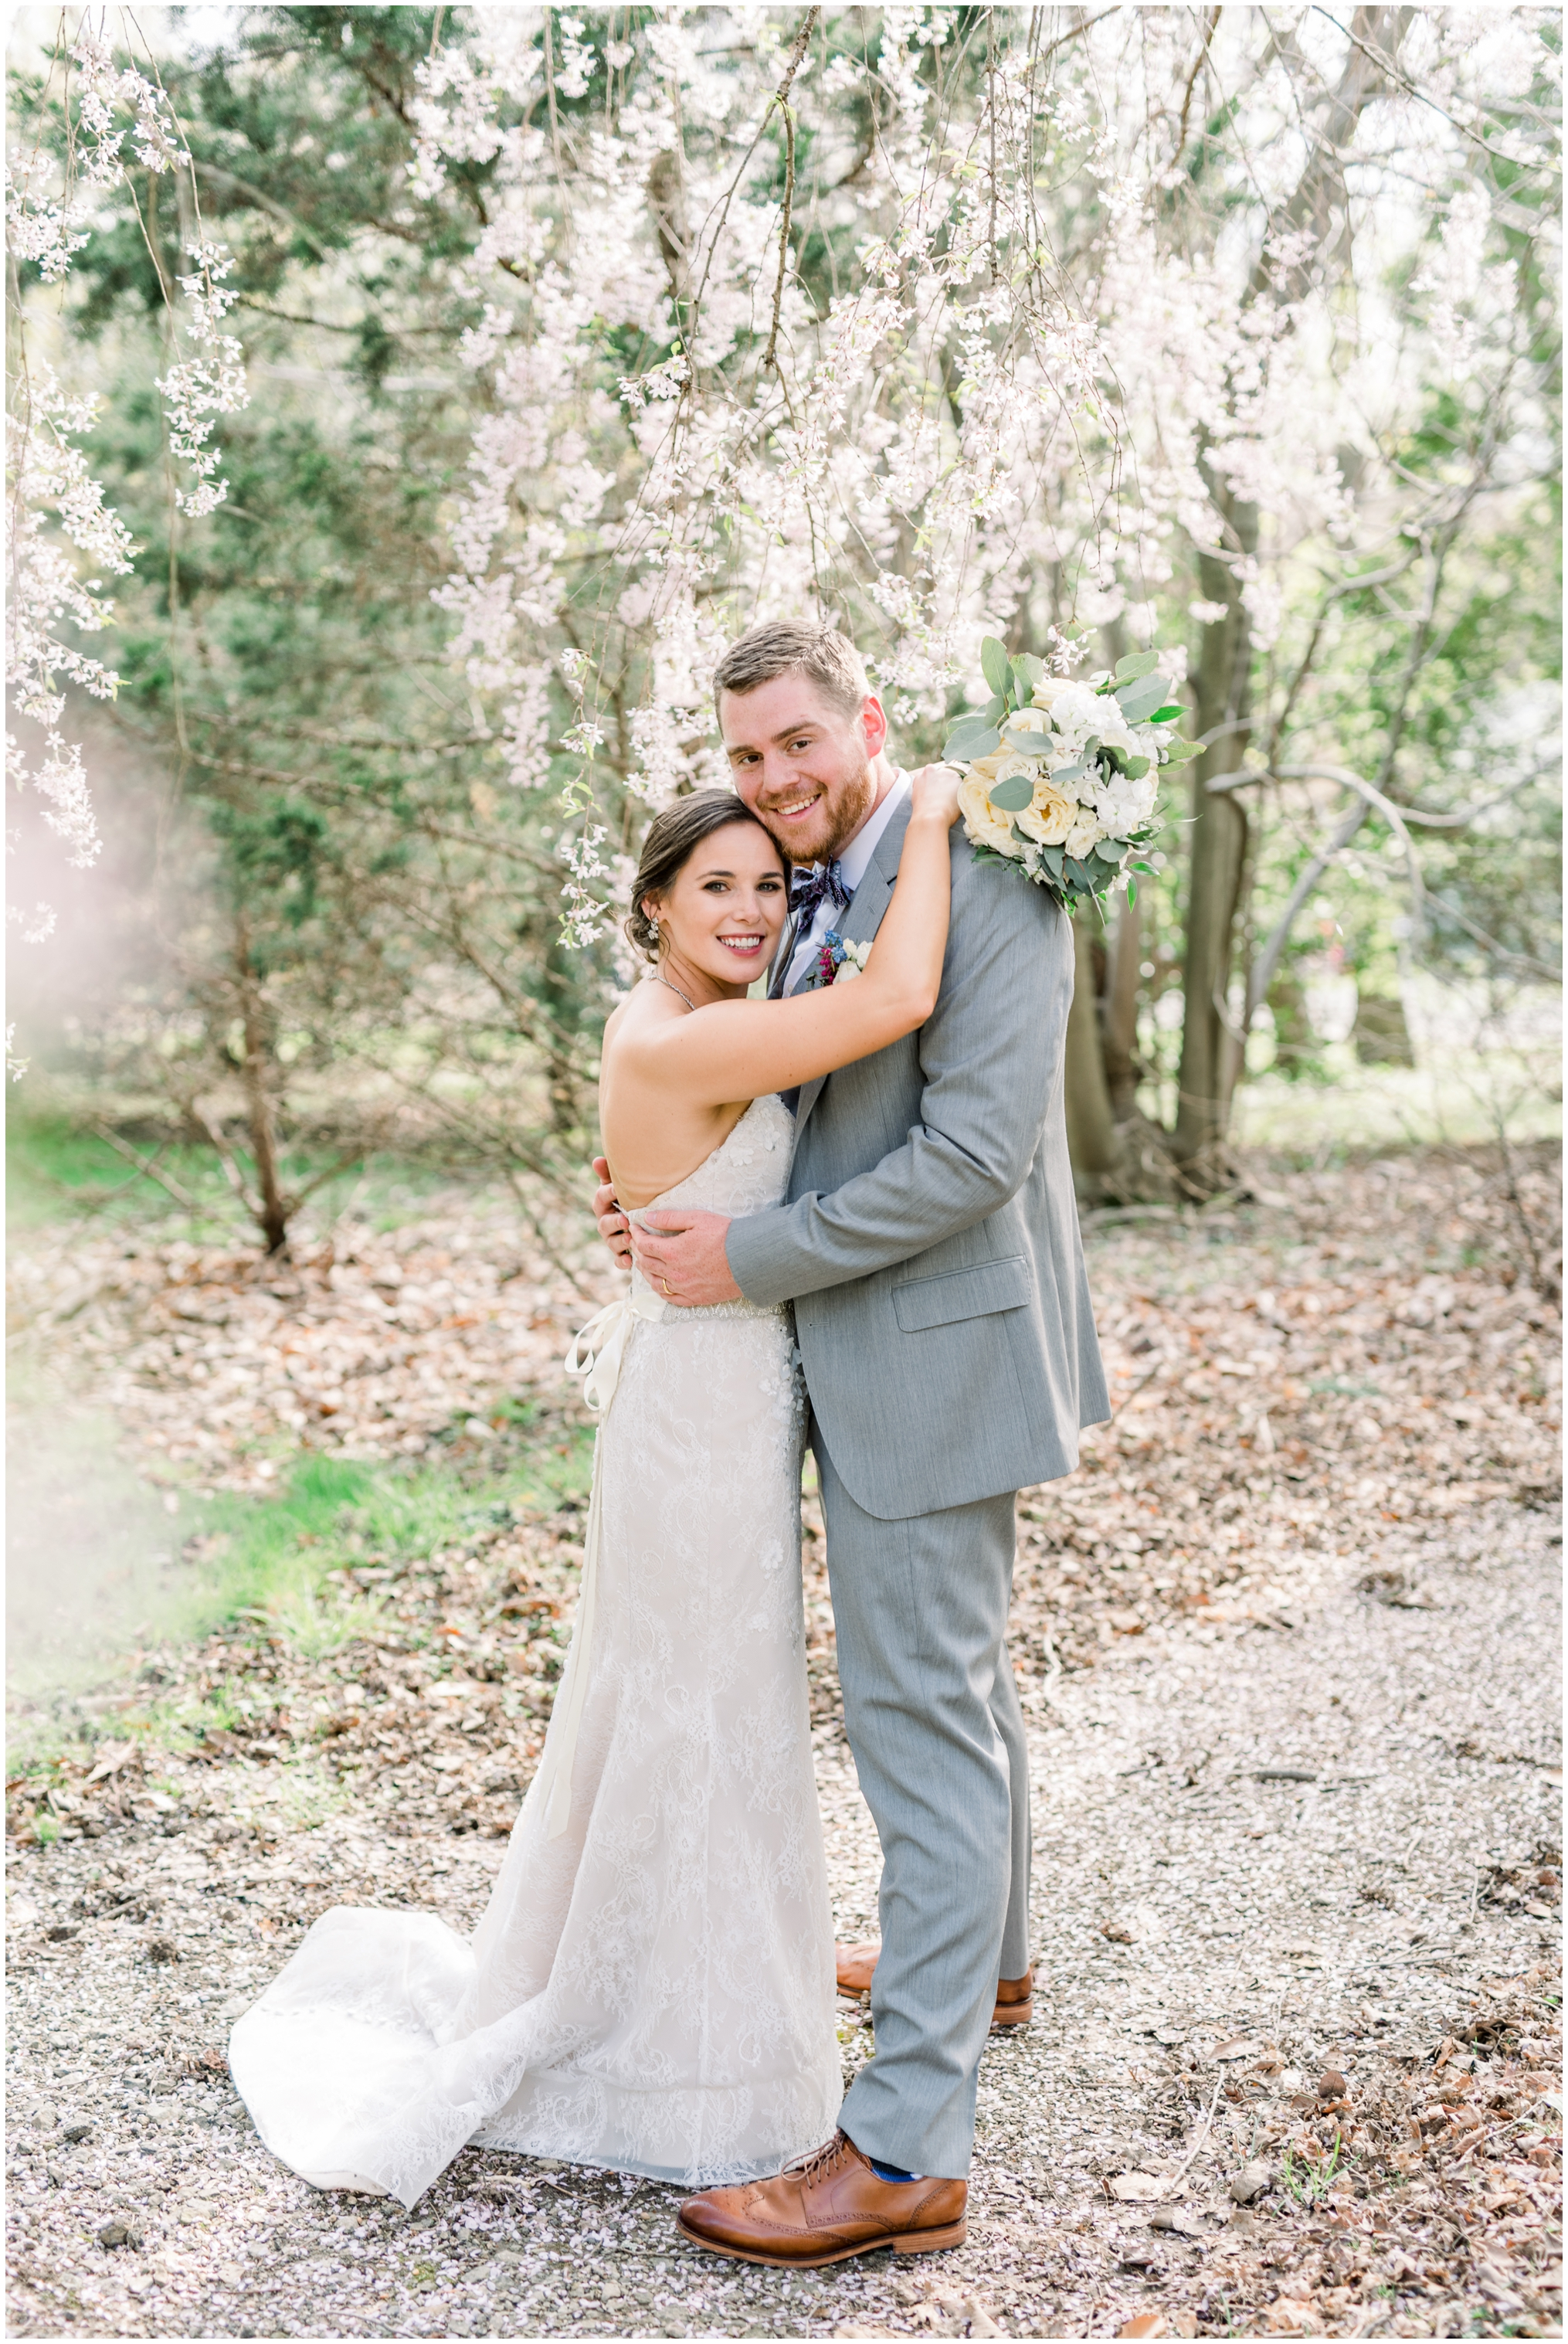 Krista Brackin Photography | April Wedding at The Carriage House at Rockwood Park_0070.jpg